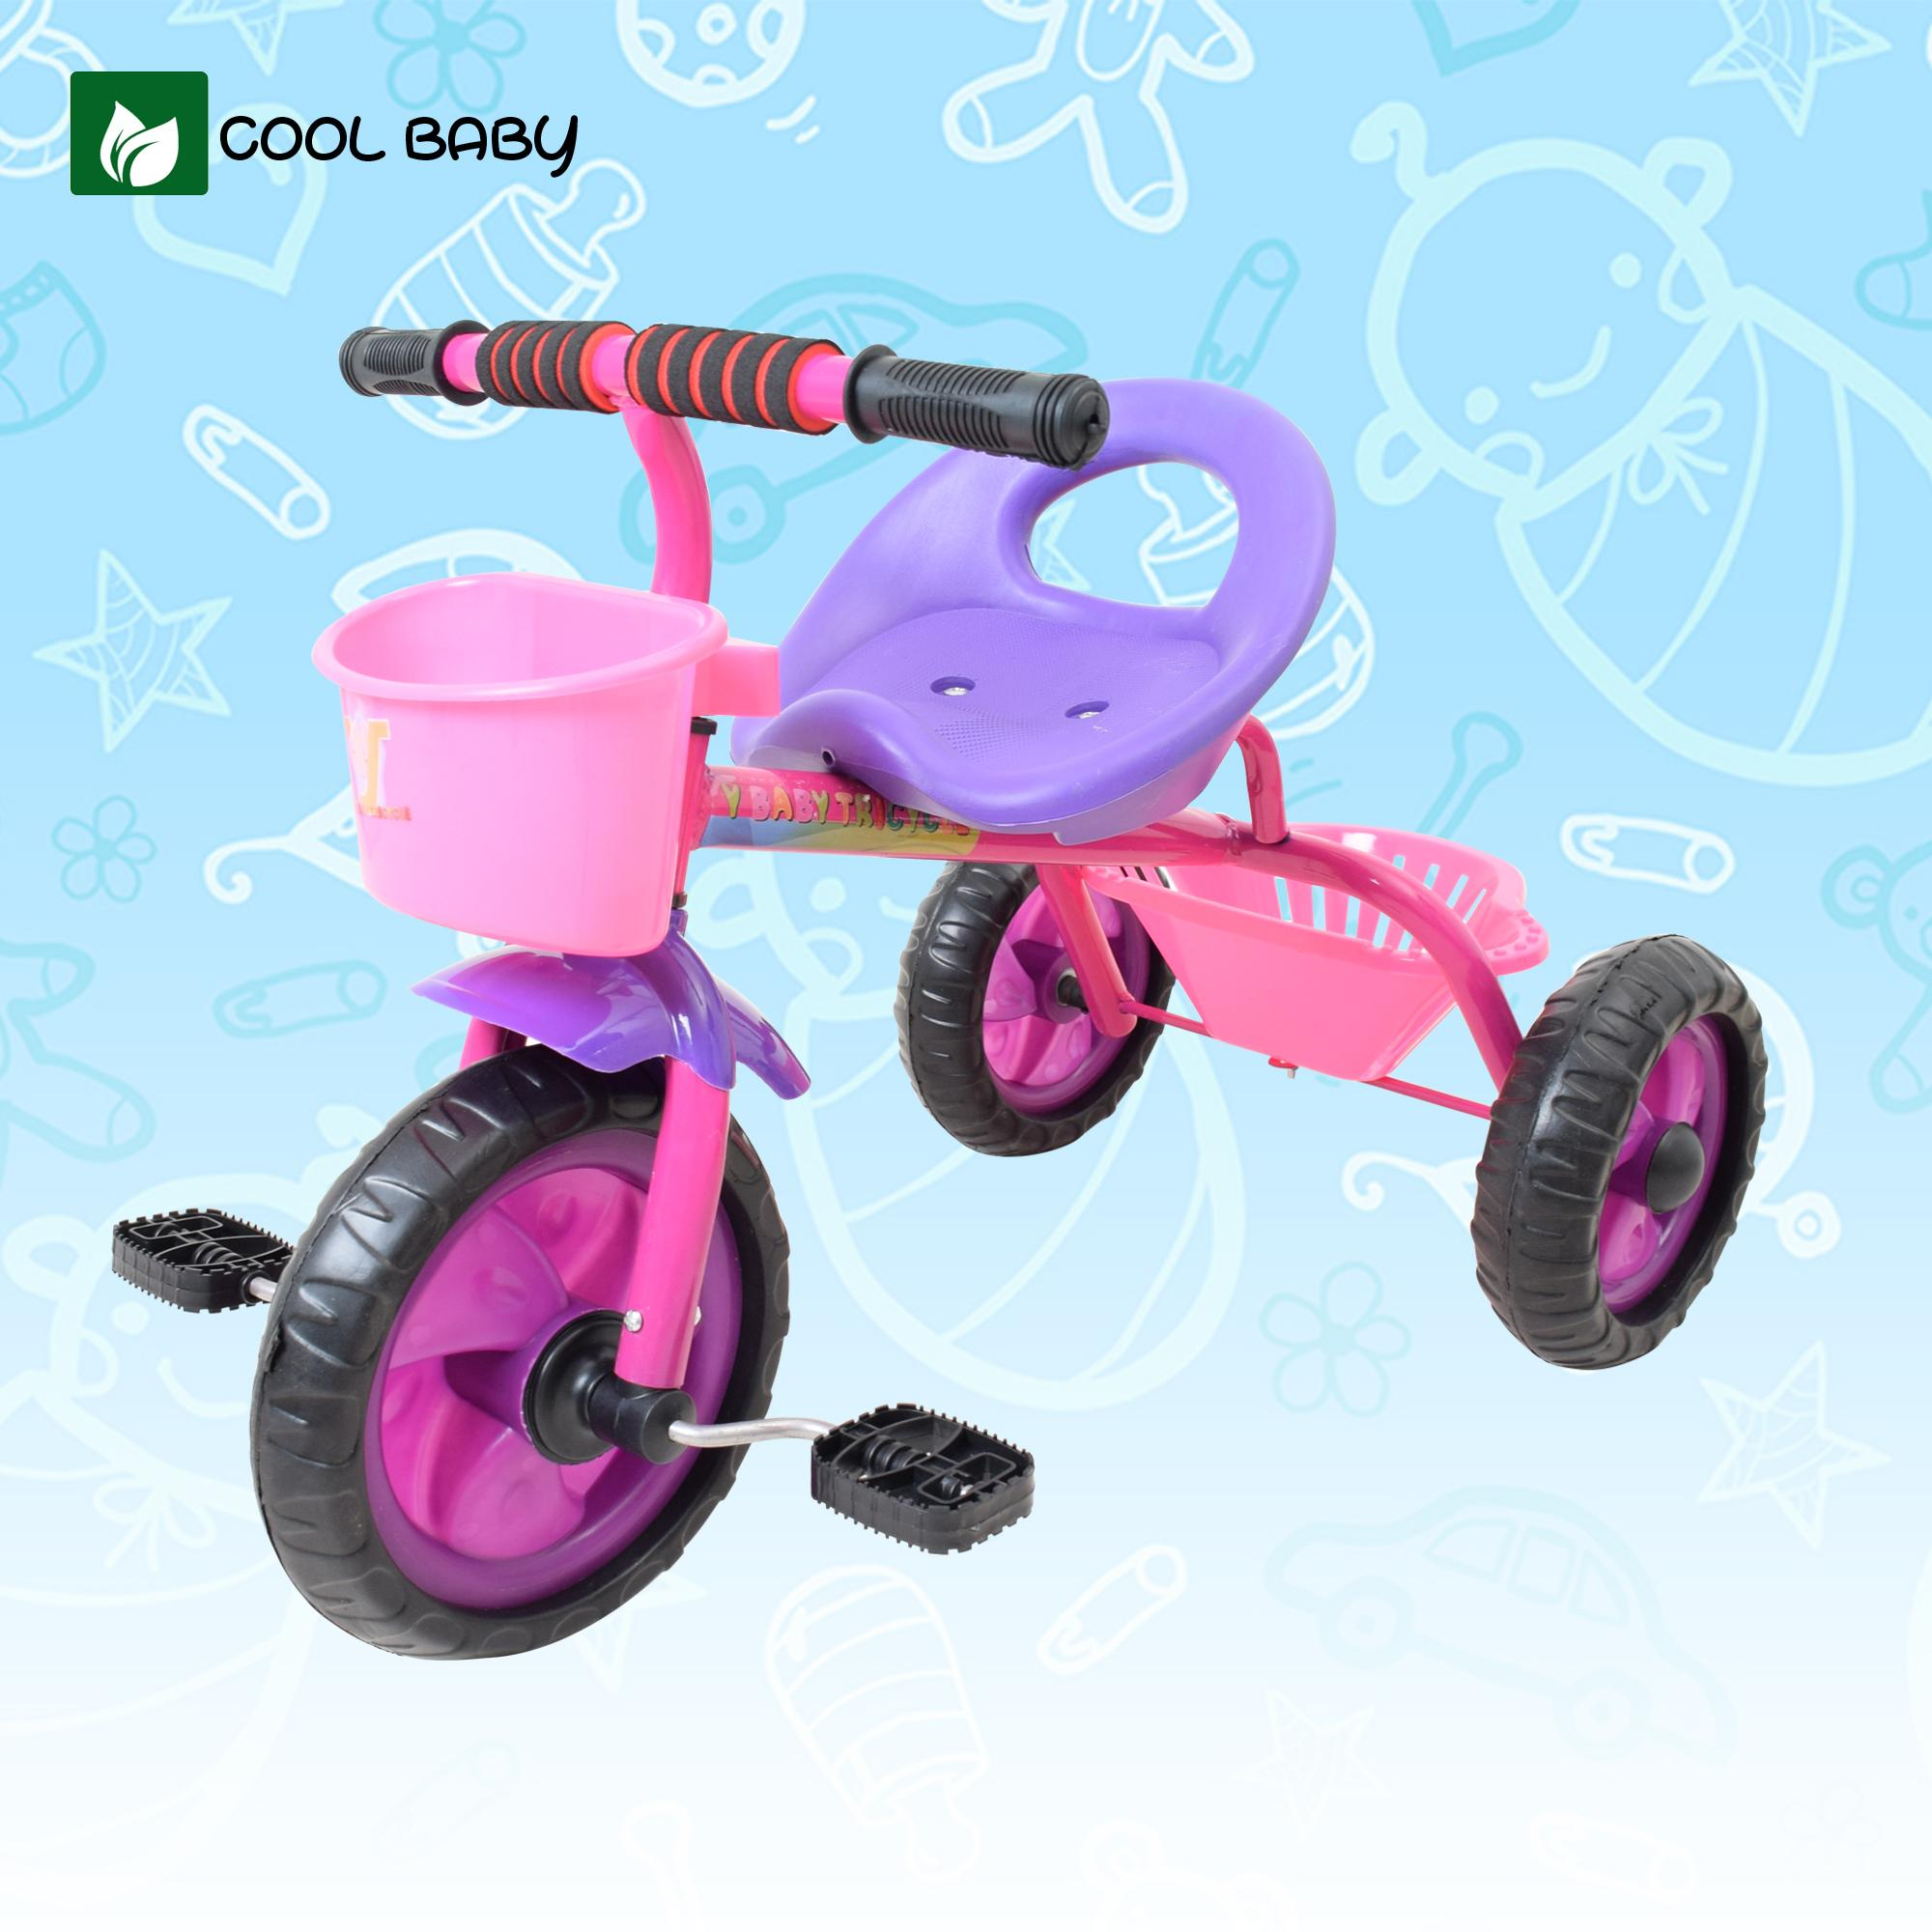 Coolbaby Zeyibeibei Baby Outdoor Bike By Cool Baby.